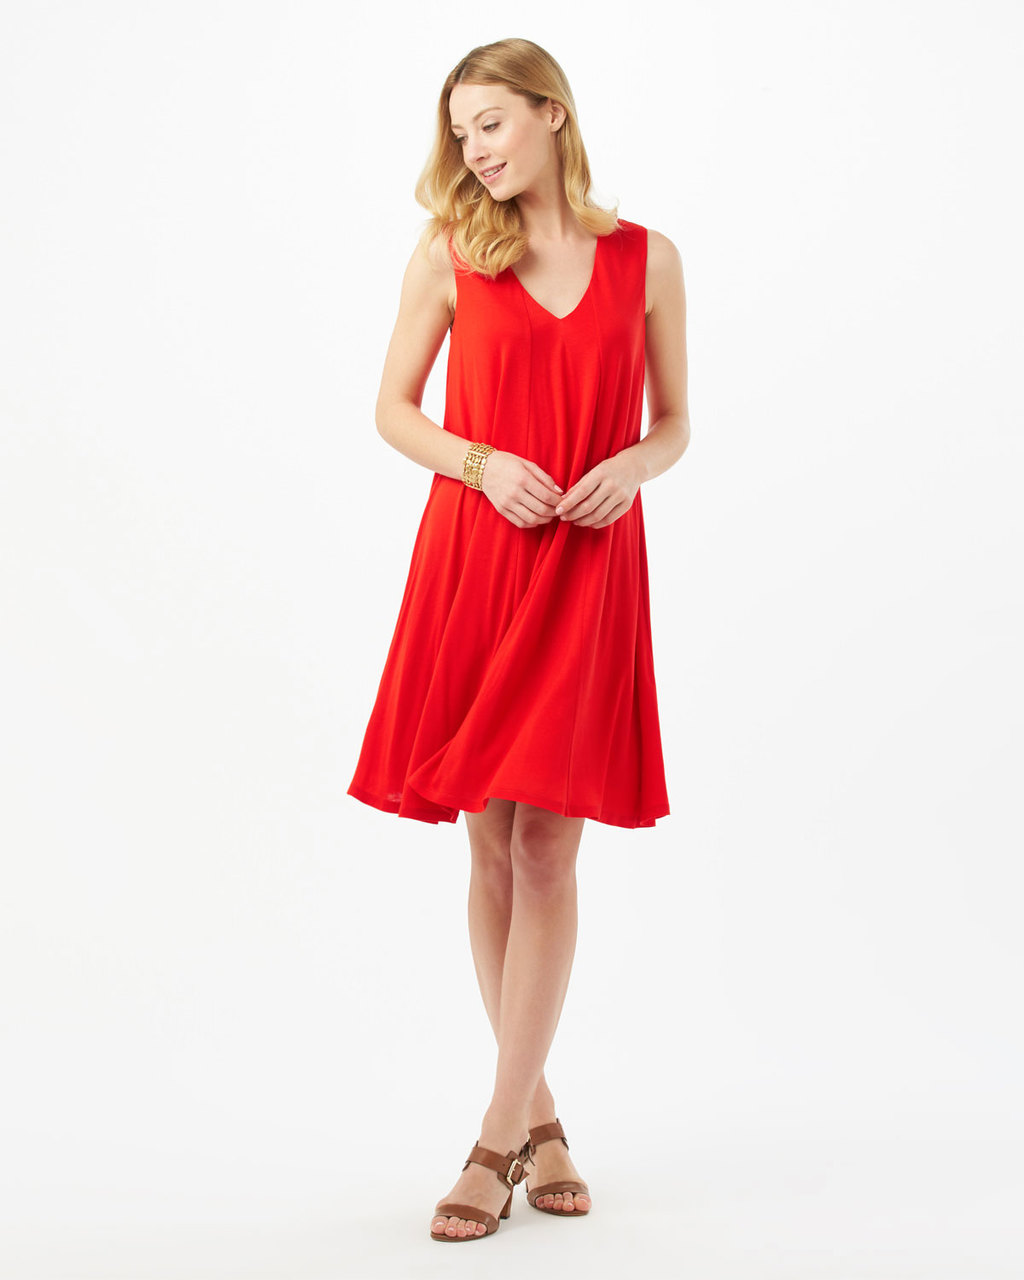 Alba Trapeze Dress - style: trapeze; neckline: v-neck; fit: loose; pattern: plain; sleeve style: sleeveless; predominant colour: true red; occasions: evening; length: just above the knee; fibres: polyester/polyamide - 100%; sleeve length: sleeveless; pattern type: fabric; texture group: jersey - stretchy/drapey; season: s/s 2016; wardrobe: event